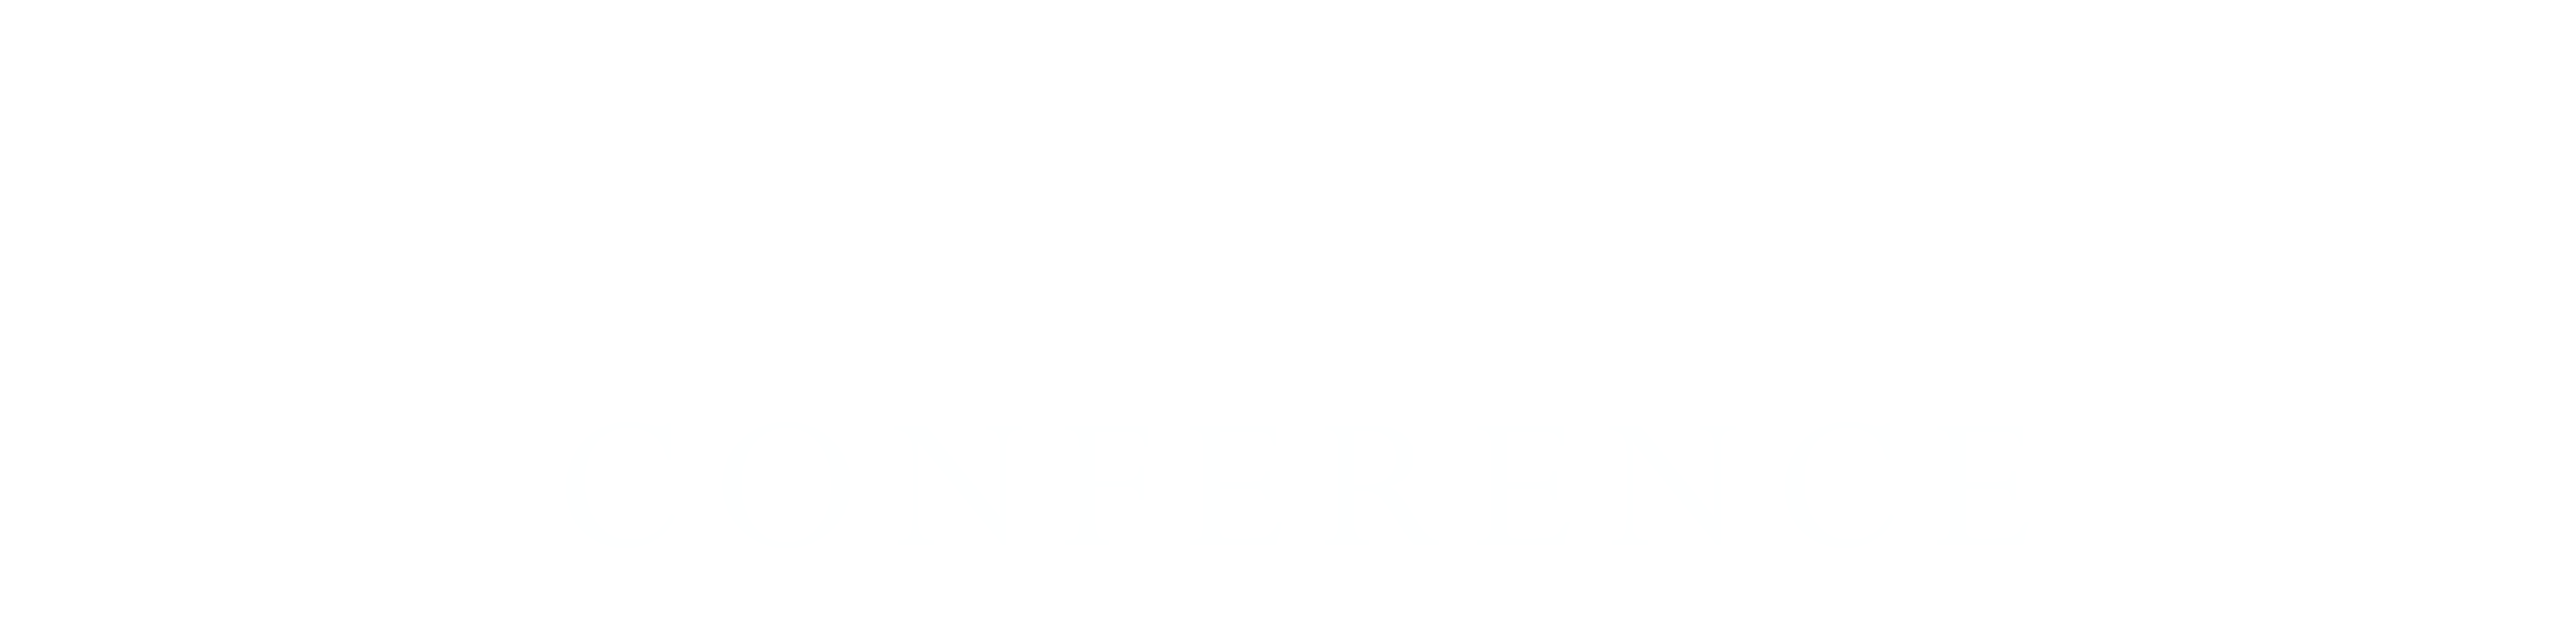 Worship God Conference logo